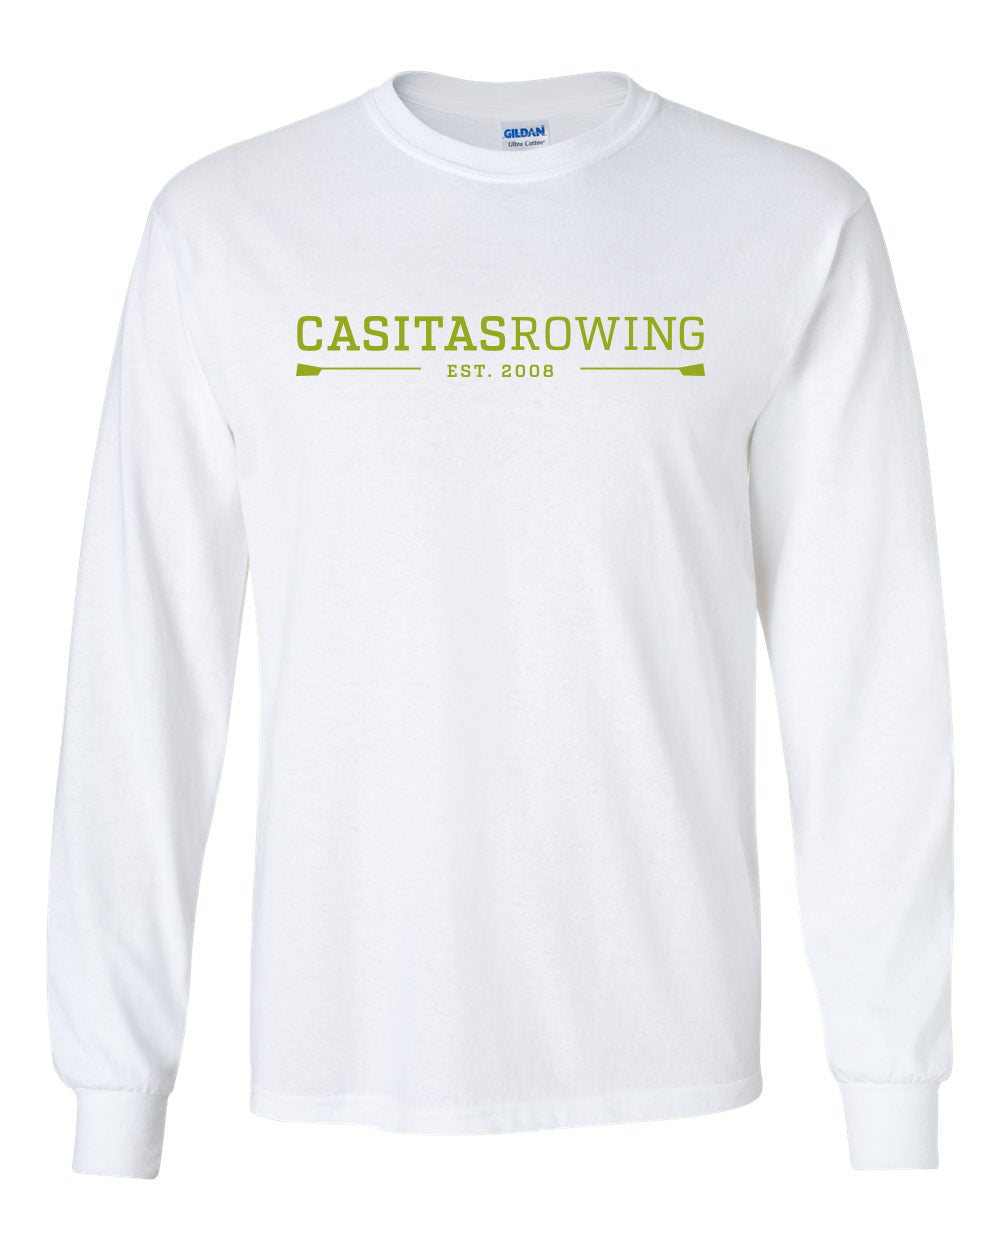 Custom Casitas Rowing Long Sleeve Cotton T-Shirt